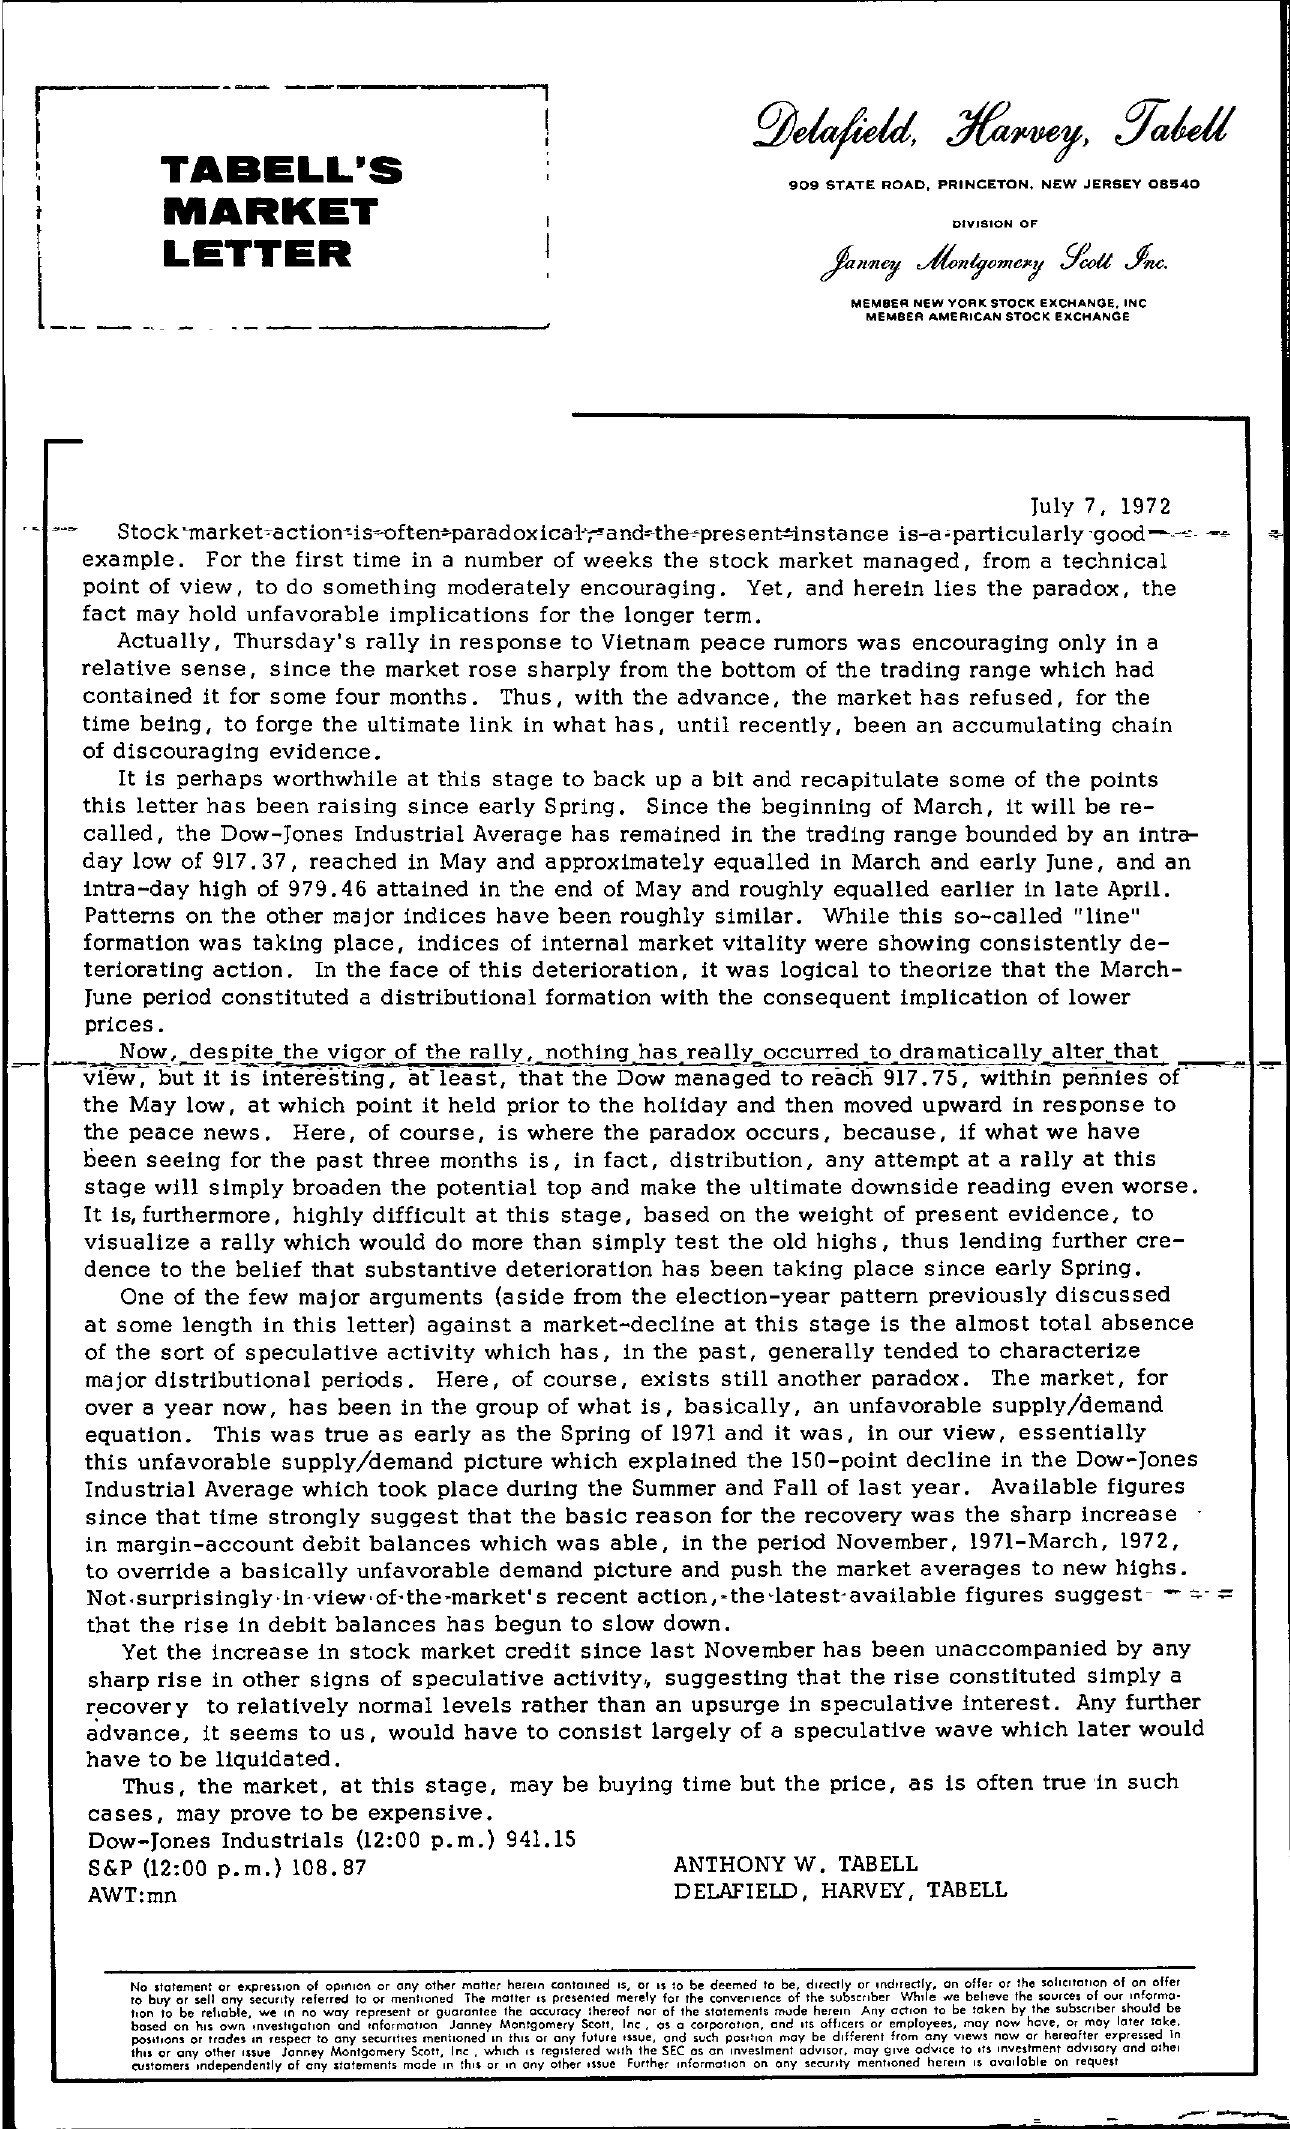 Tabell's Market Letter - July 07, 1972